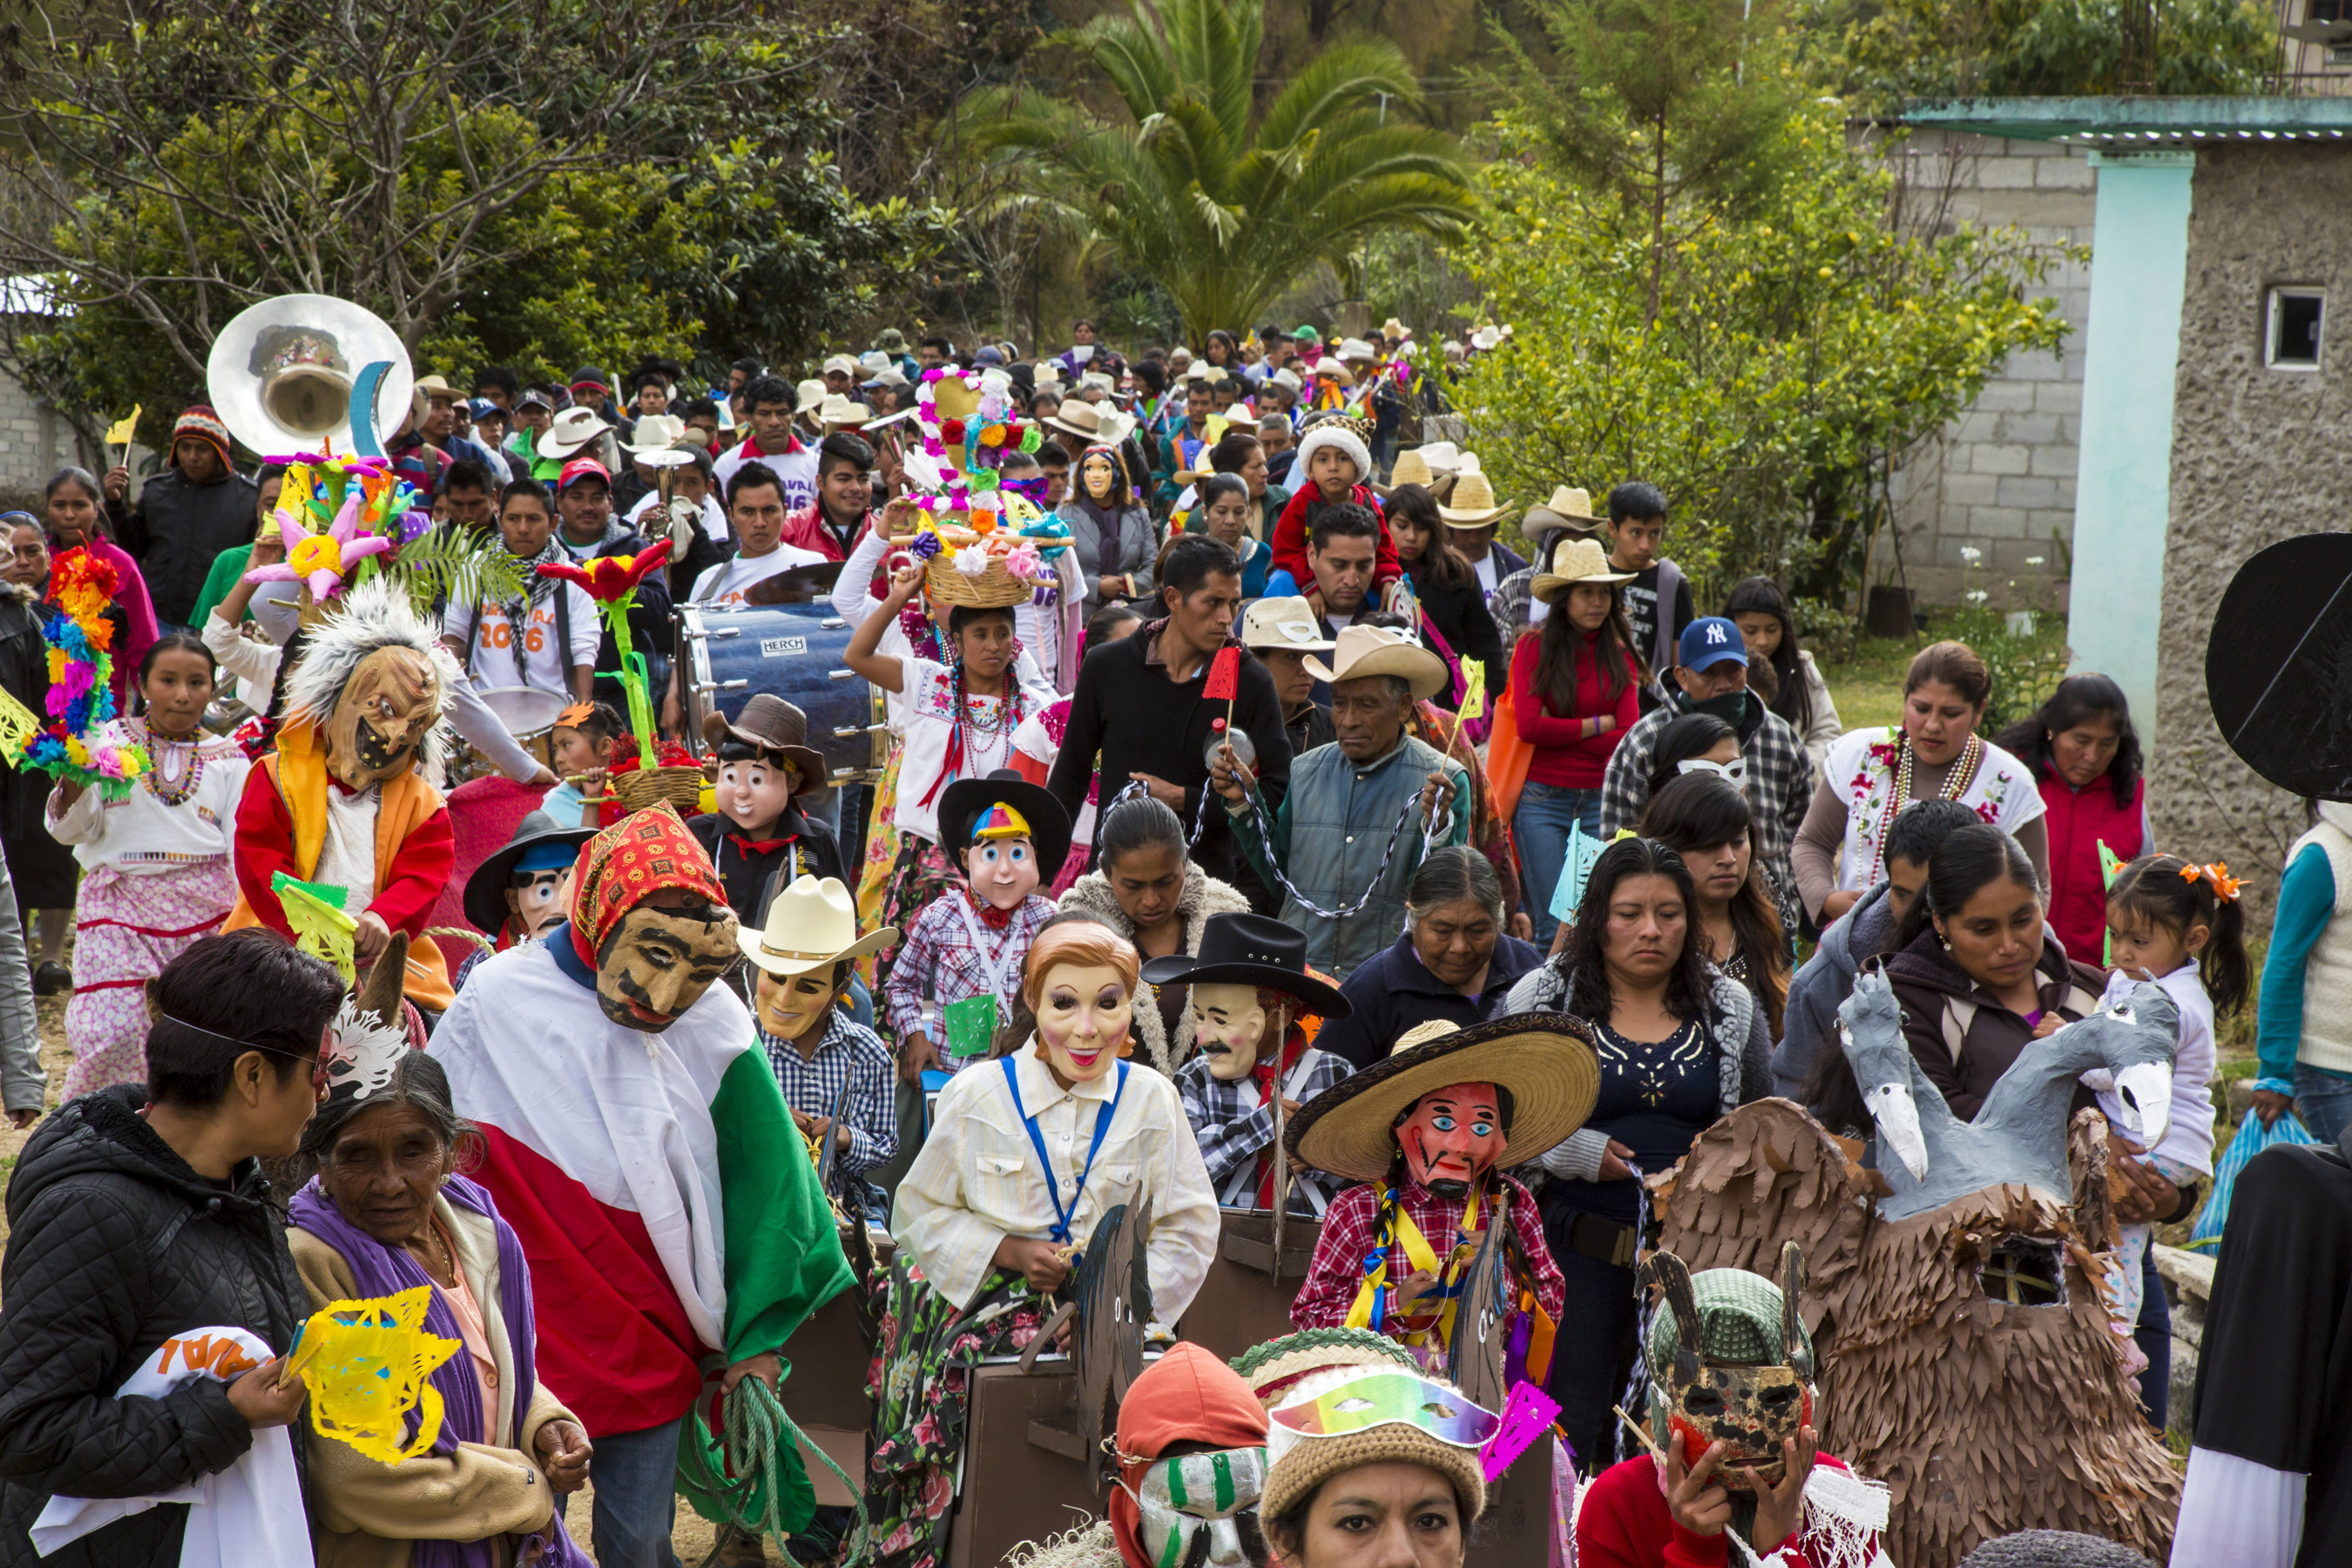 Residents of a small Mixtec mountain town participate in their annual pre-Lenten Carnival celebration Feb. 6 in Oaxaca, Mexico. (CNS photo/Jim West)